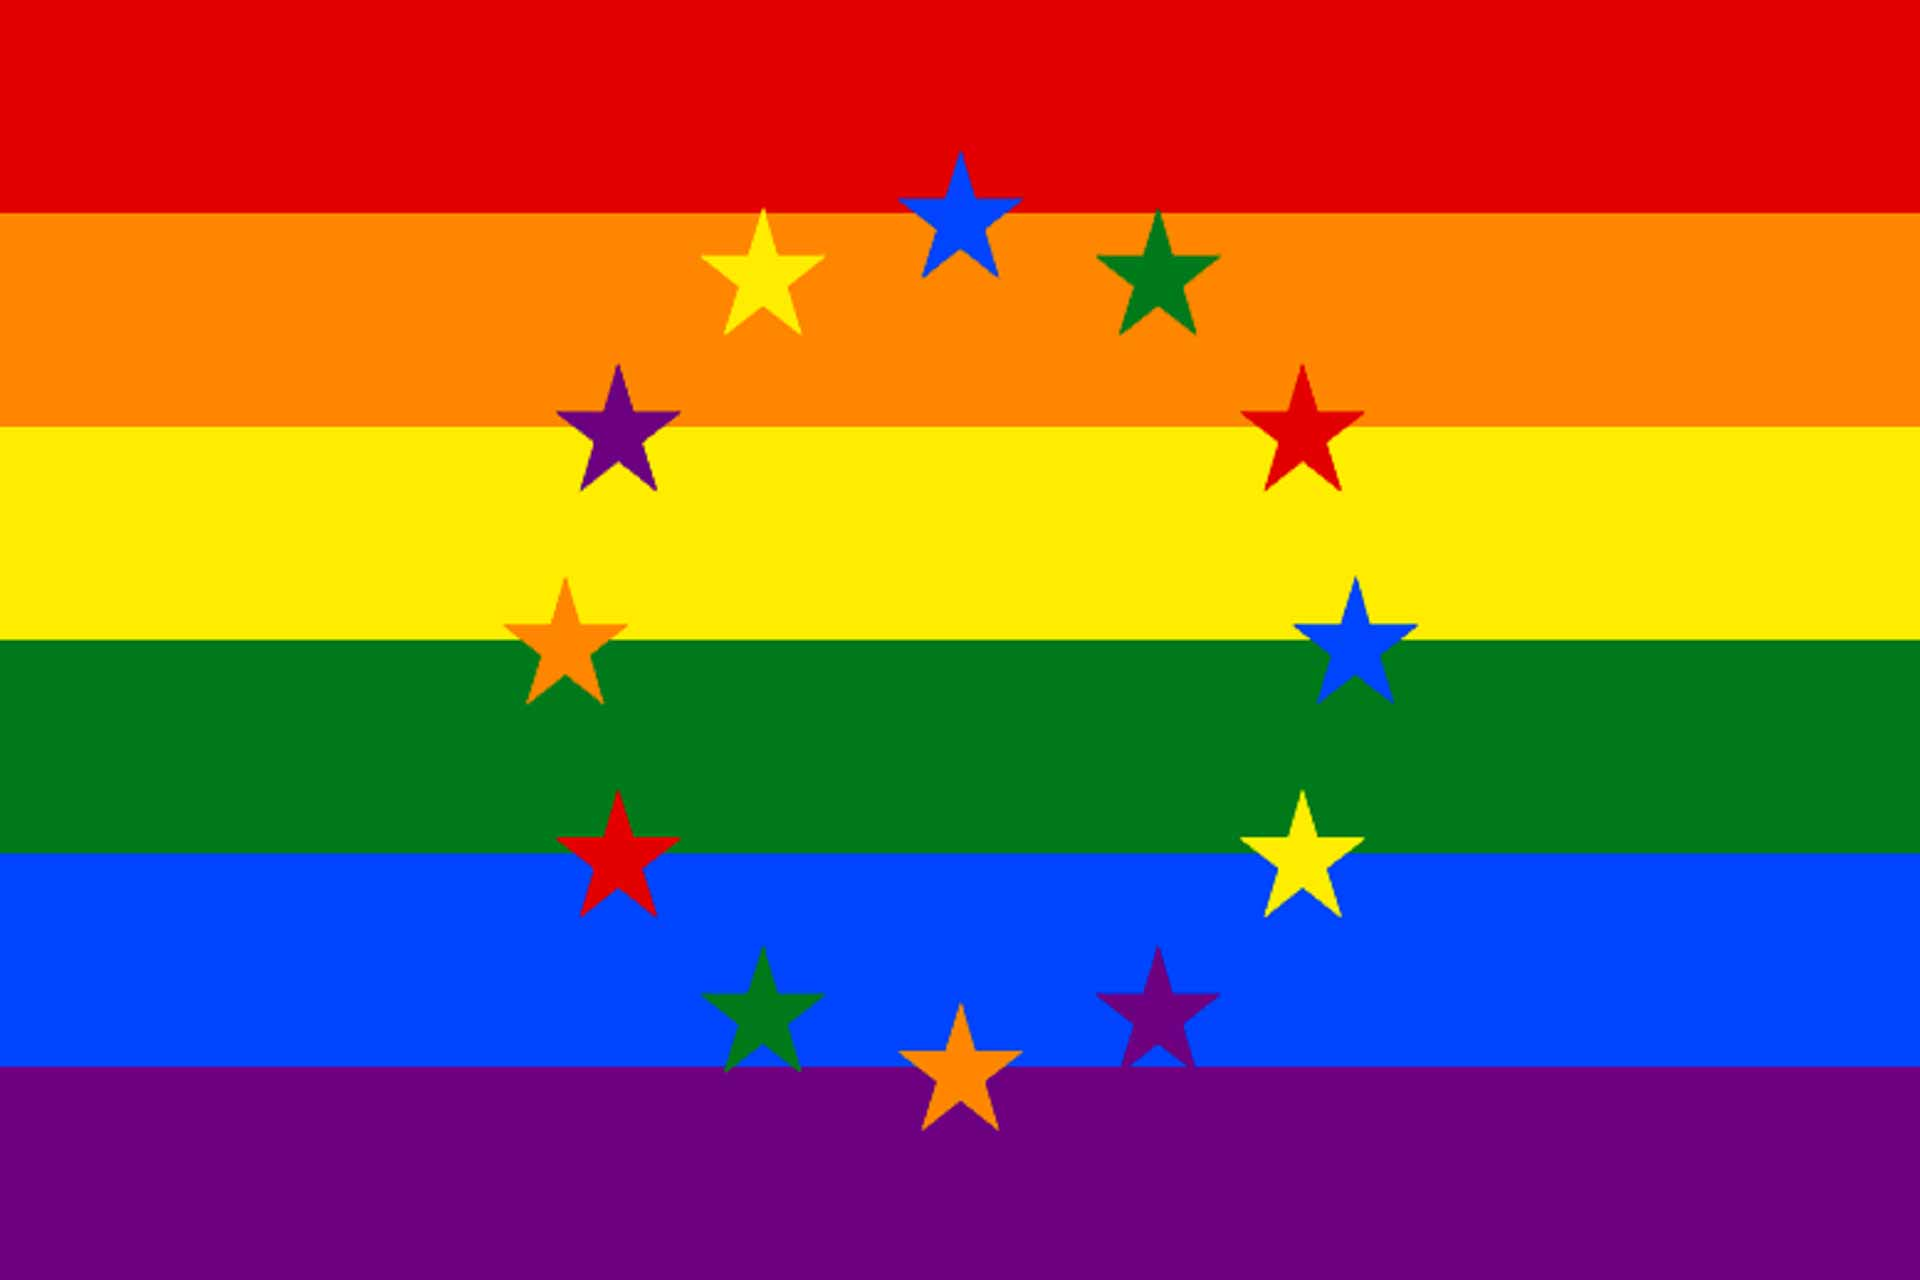 Pride Month of global LGBT communities. United in diversity!